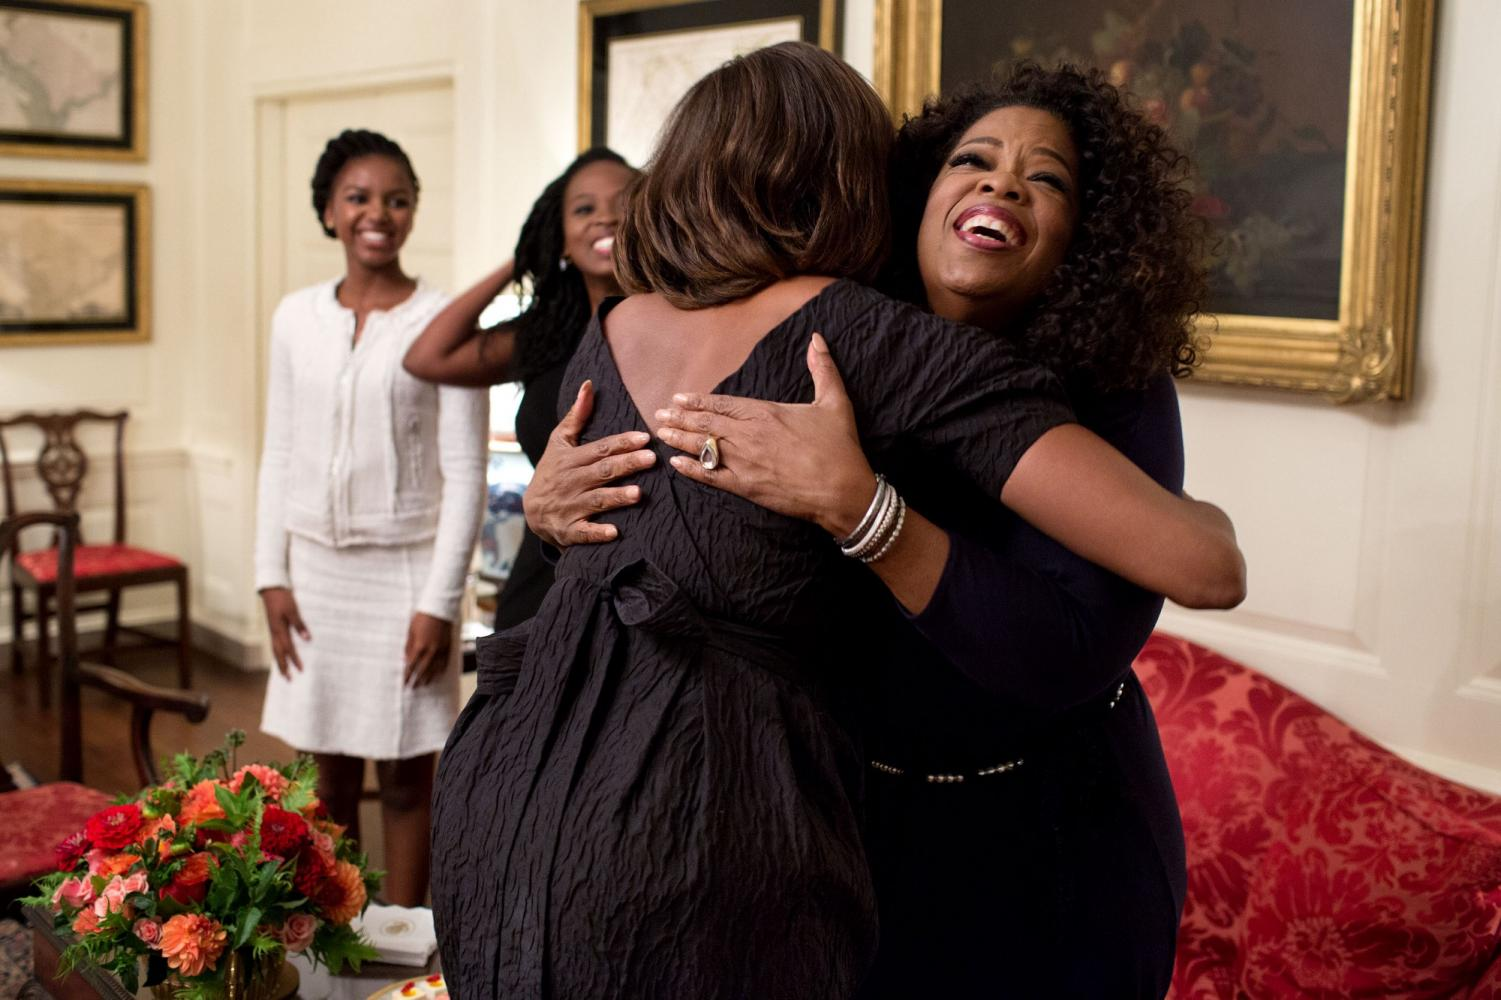 There has been speculation that Oprah is considering running for presidential election in 2022.